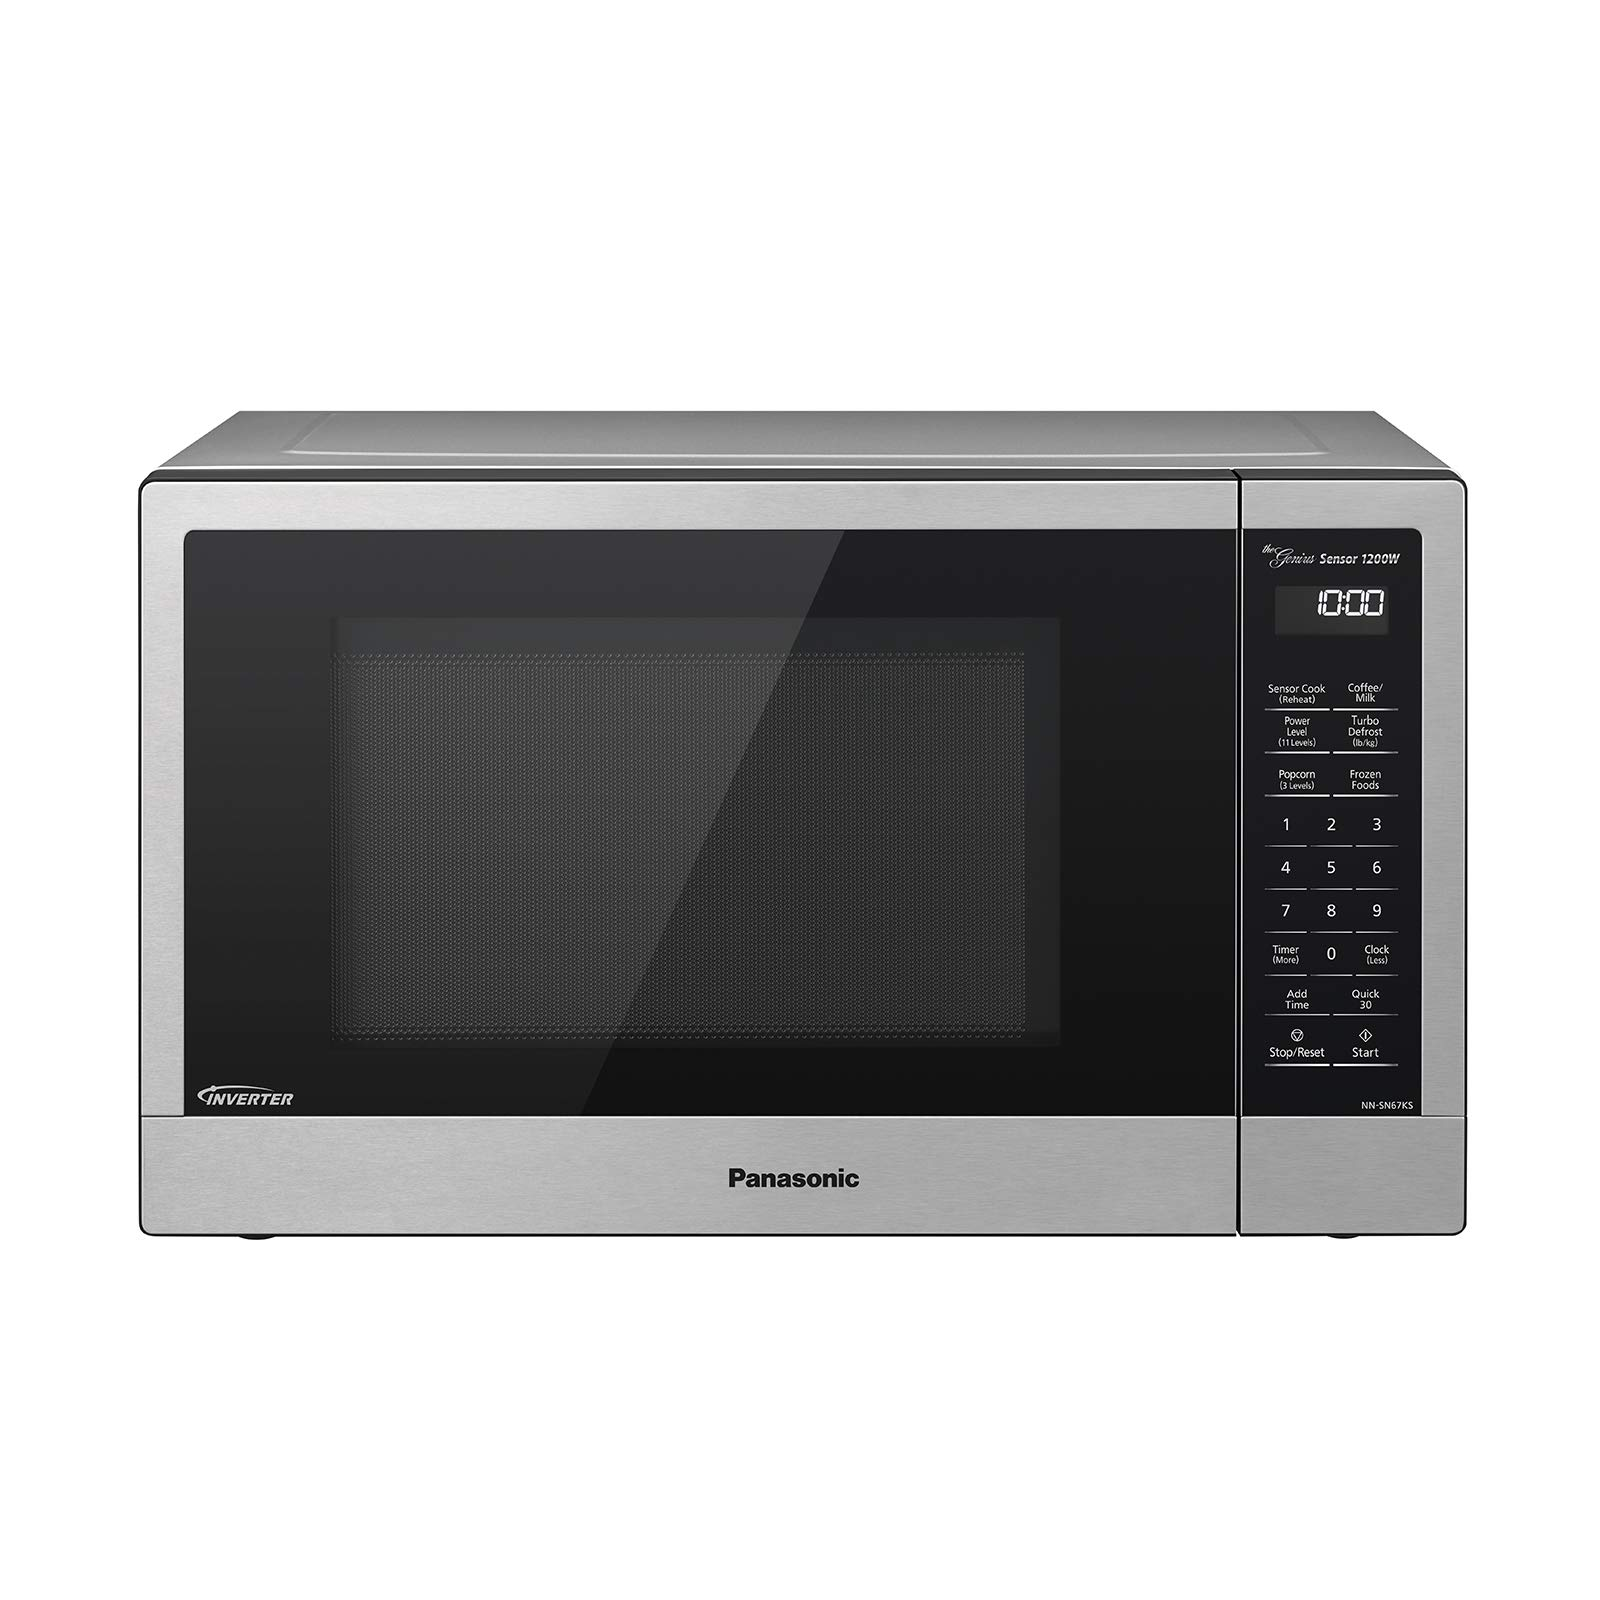 Panasonic Silver 1 2 Cu Ft Microwave Oven: Best Rated In Countertop Microwave Ovens & Helpful